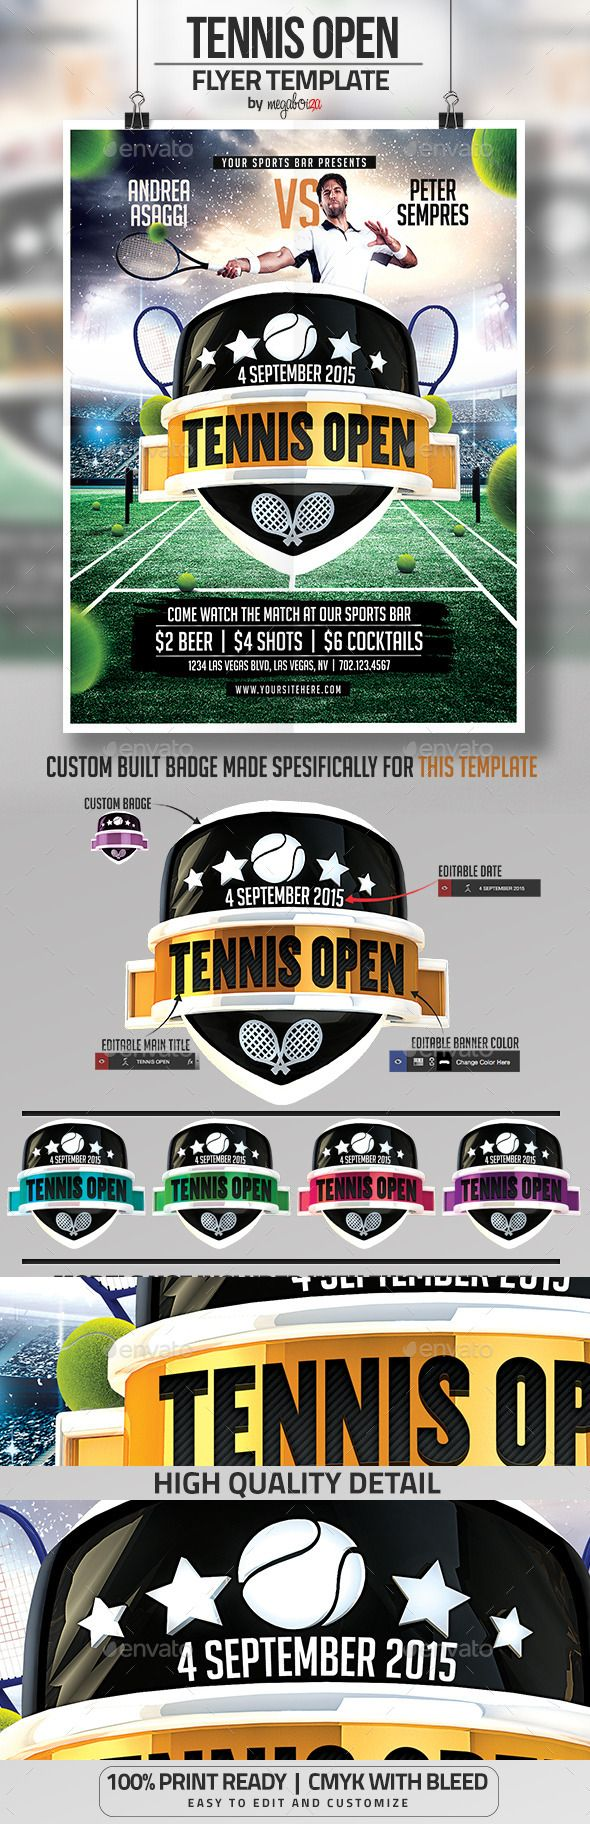 Tennis Open Flyer / Poster Template by megaboiza This is a great flyer template to promote tennis matches at your sports bar. It is easy to edit and will have you on your way to a